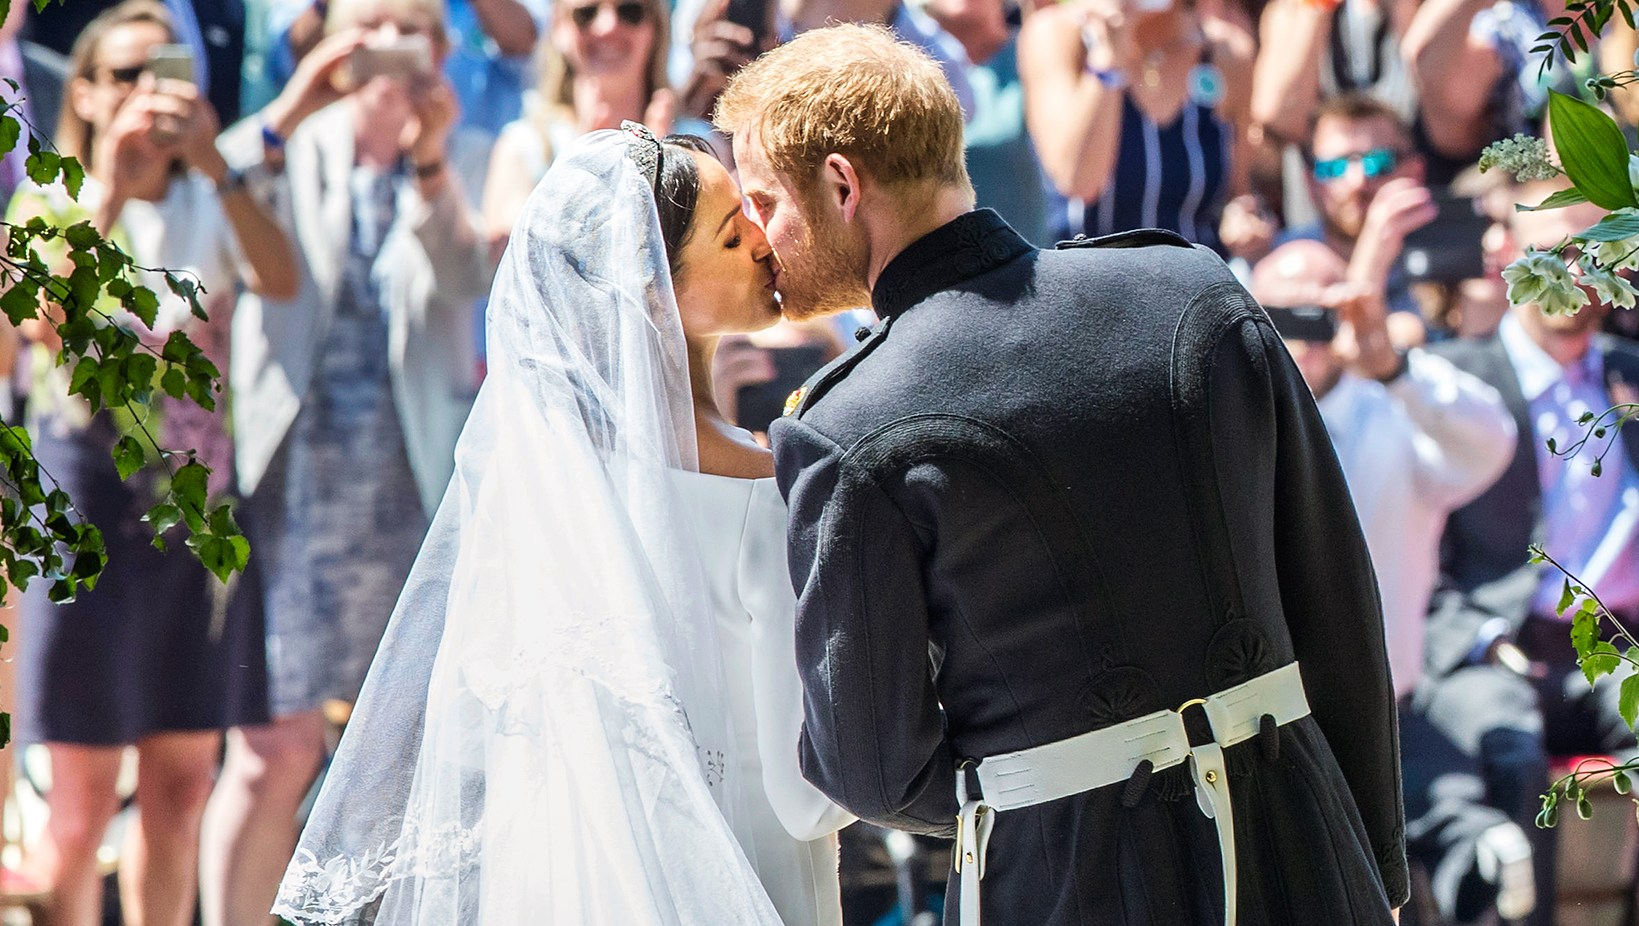 Prince Harry Meghan Markle Royal Wedding 29 Million Viewers